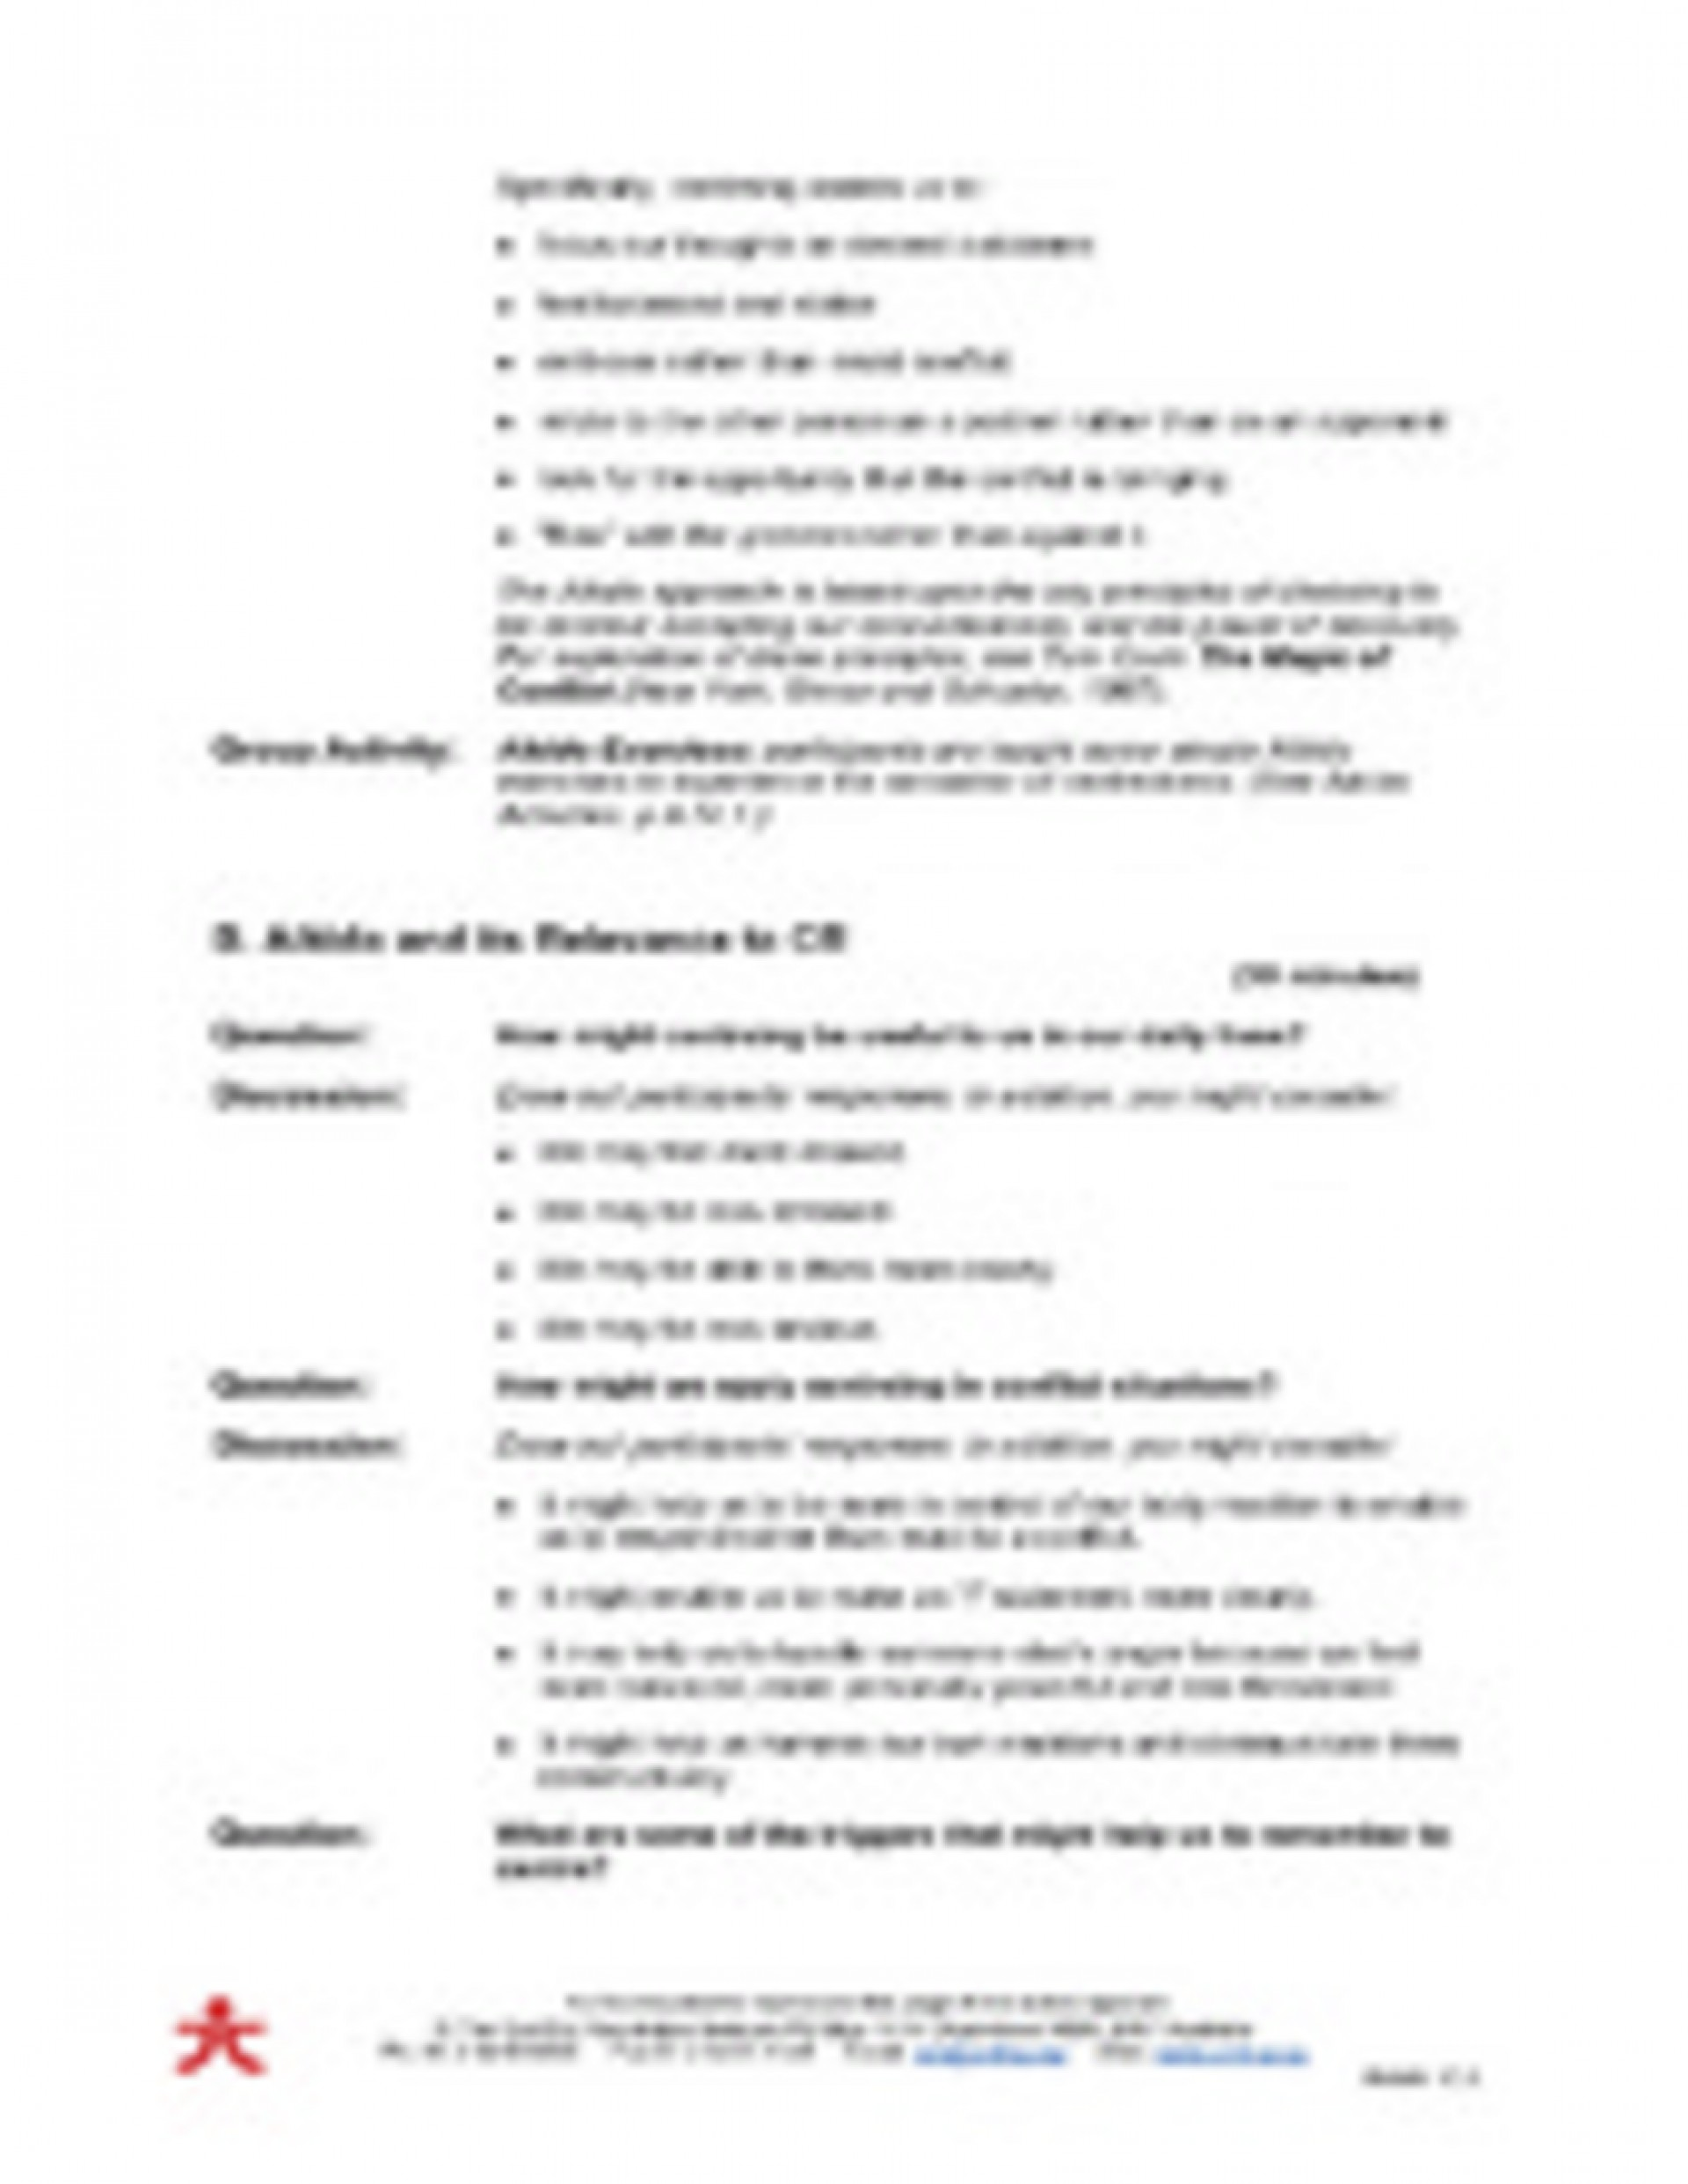 011 Conflict20resolution20class20notes 28058935 Aikido Conflict Resolution Material Part 17page2 Essay Example Formidable Trifles Questions Feminism Topics 1920